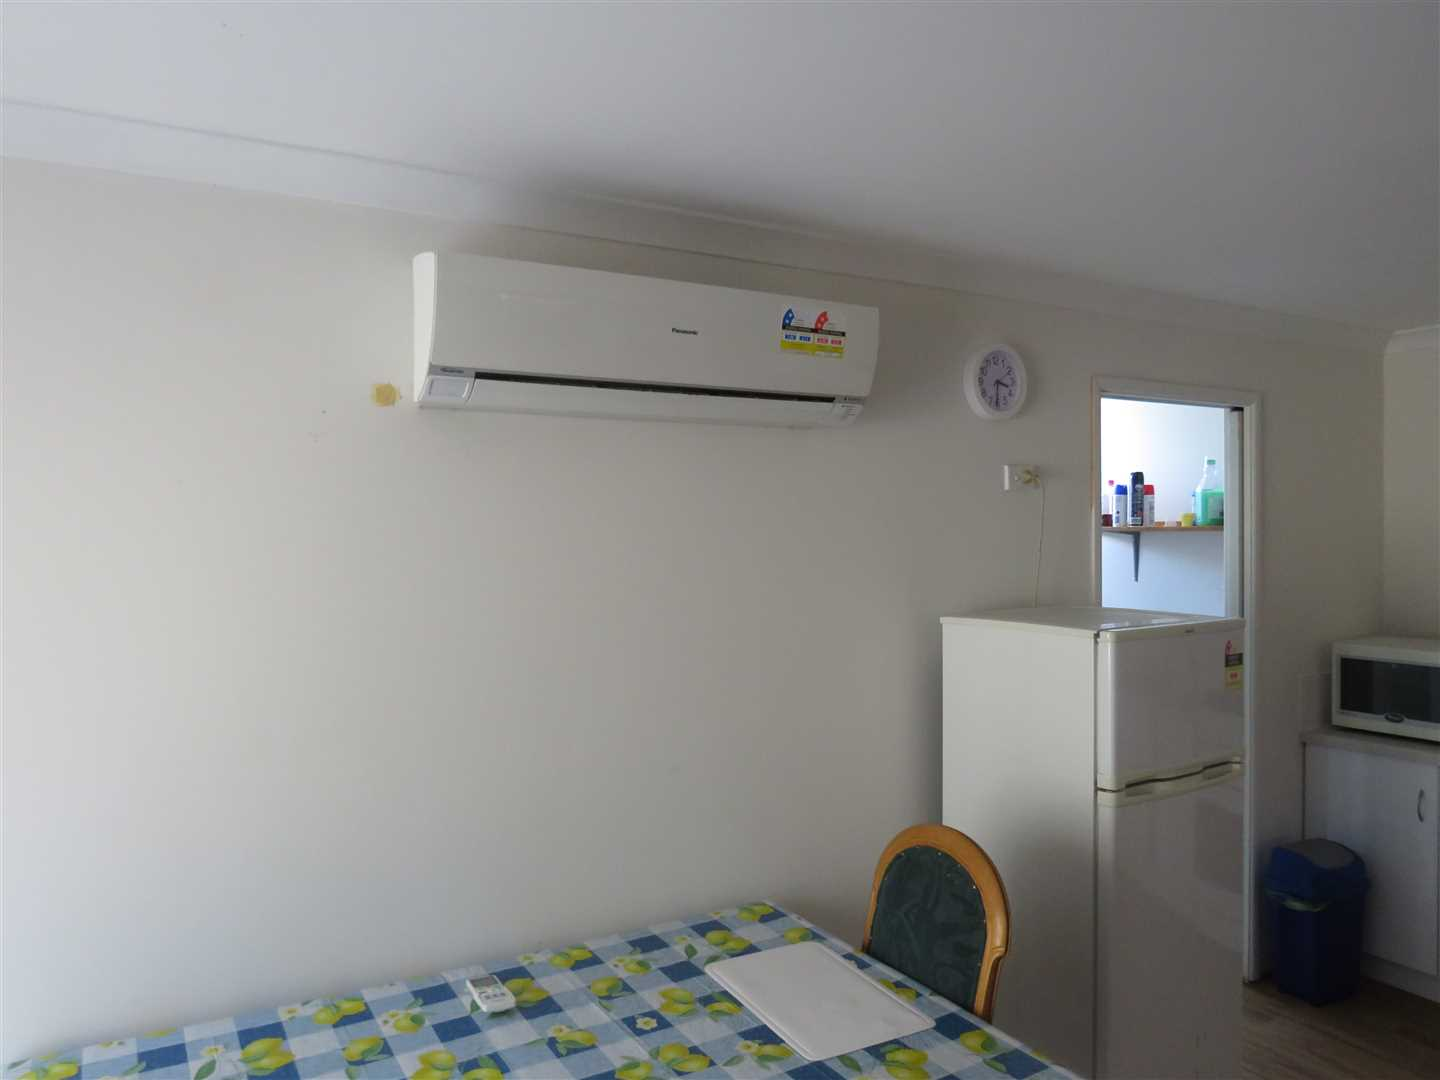 panasonic aircon and fridge,dining table in shed unit